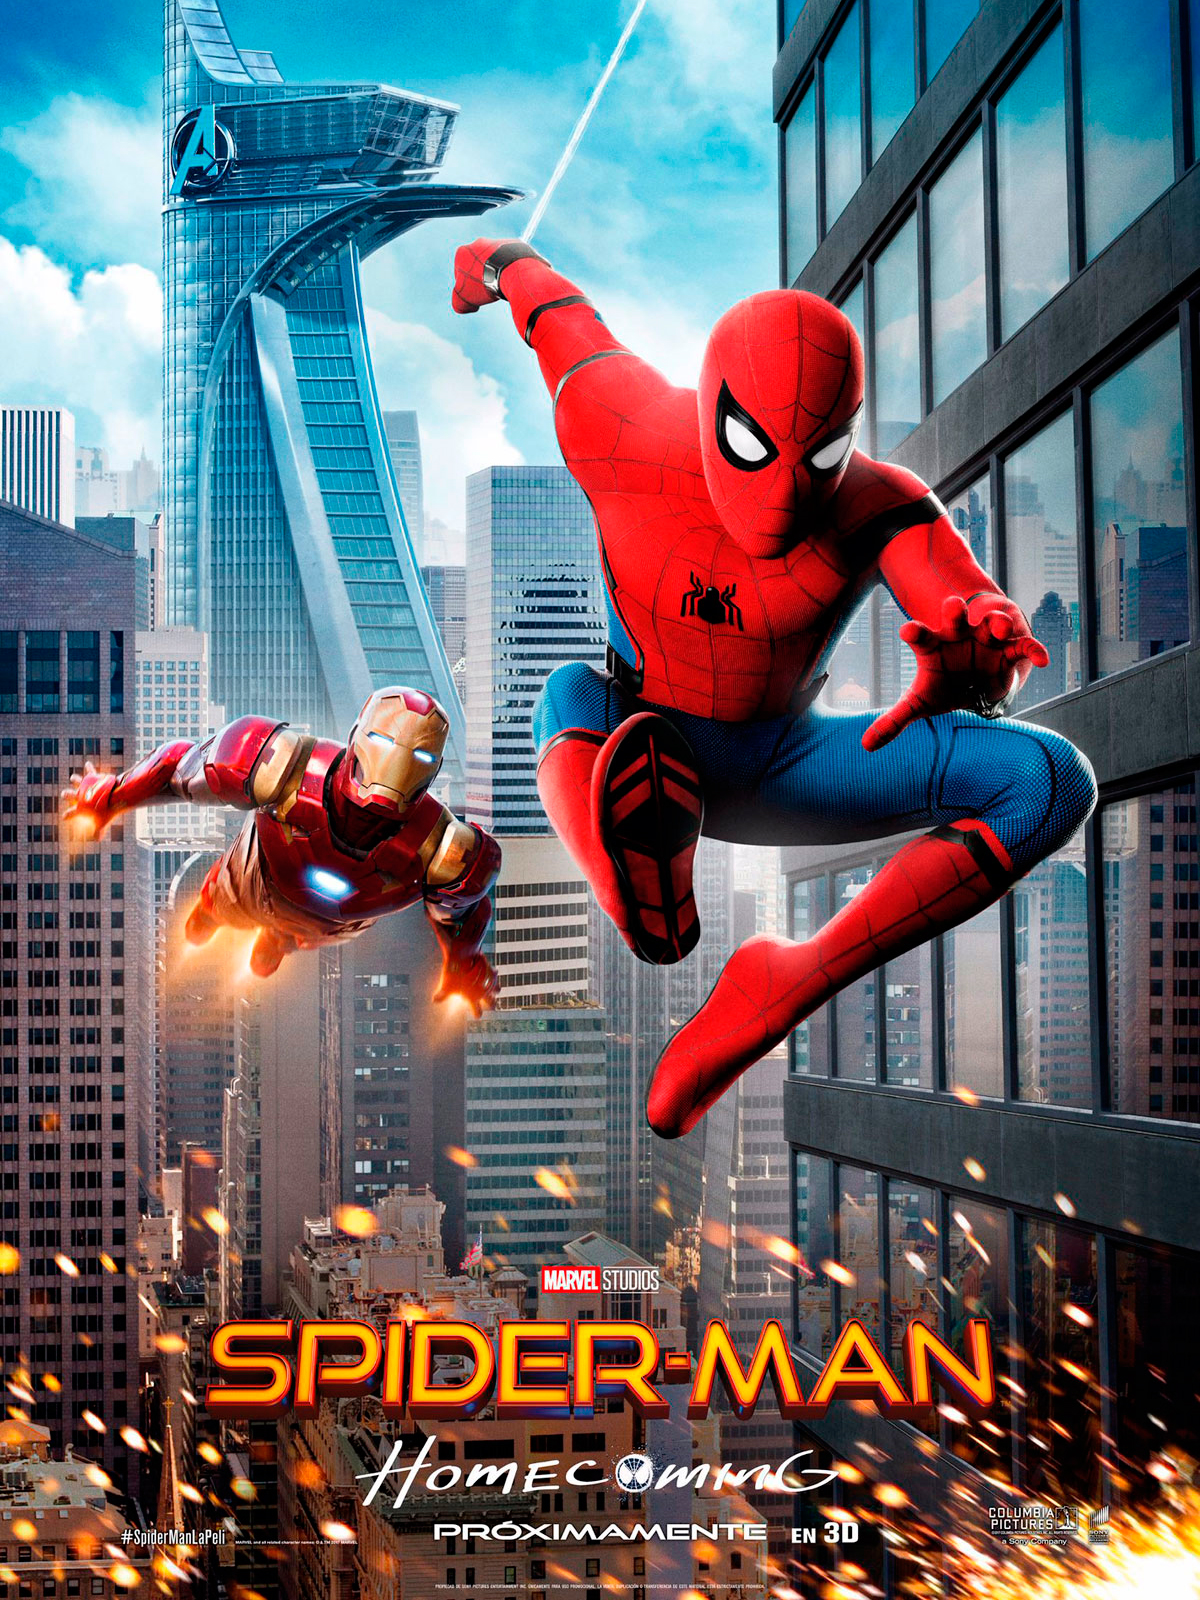 spider-man: homecoming - película 2017 - sensacine